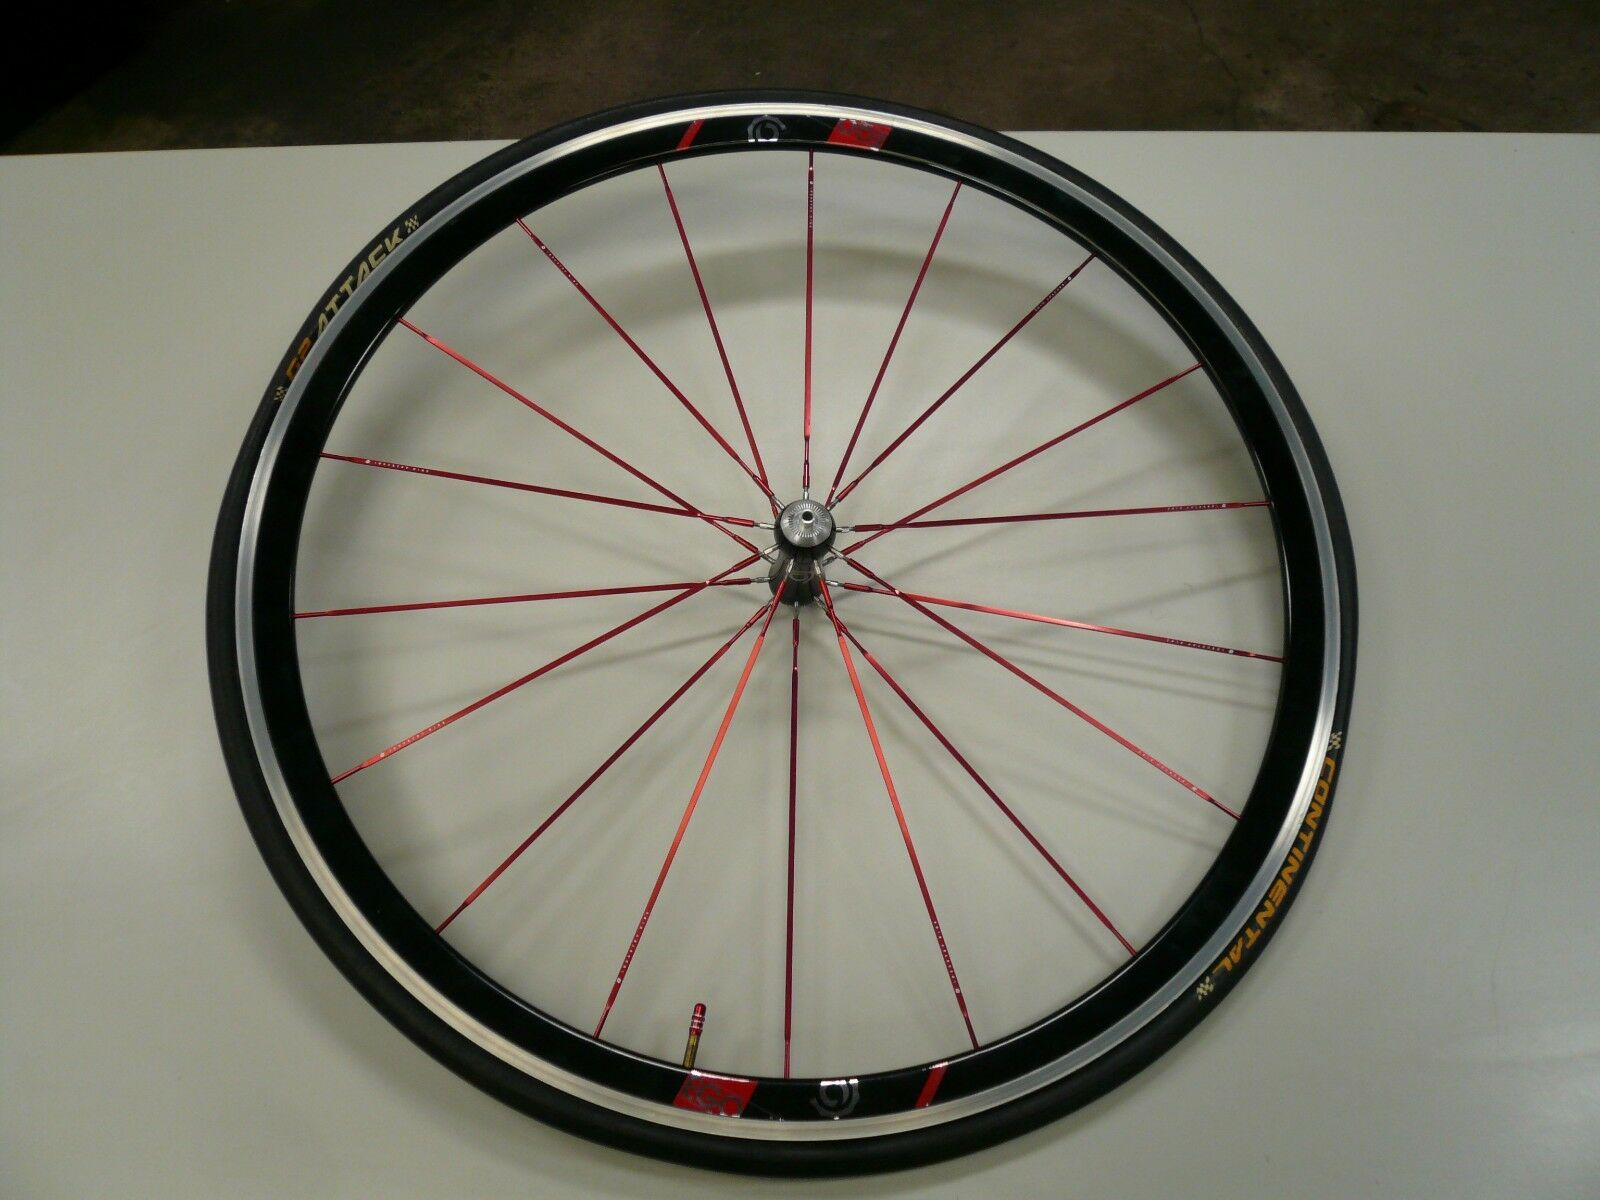 New Industry Nine 700C Ego Front Bicycle Wheel With New Continental Tire